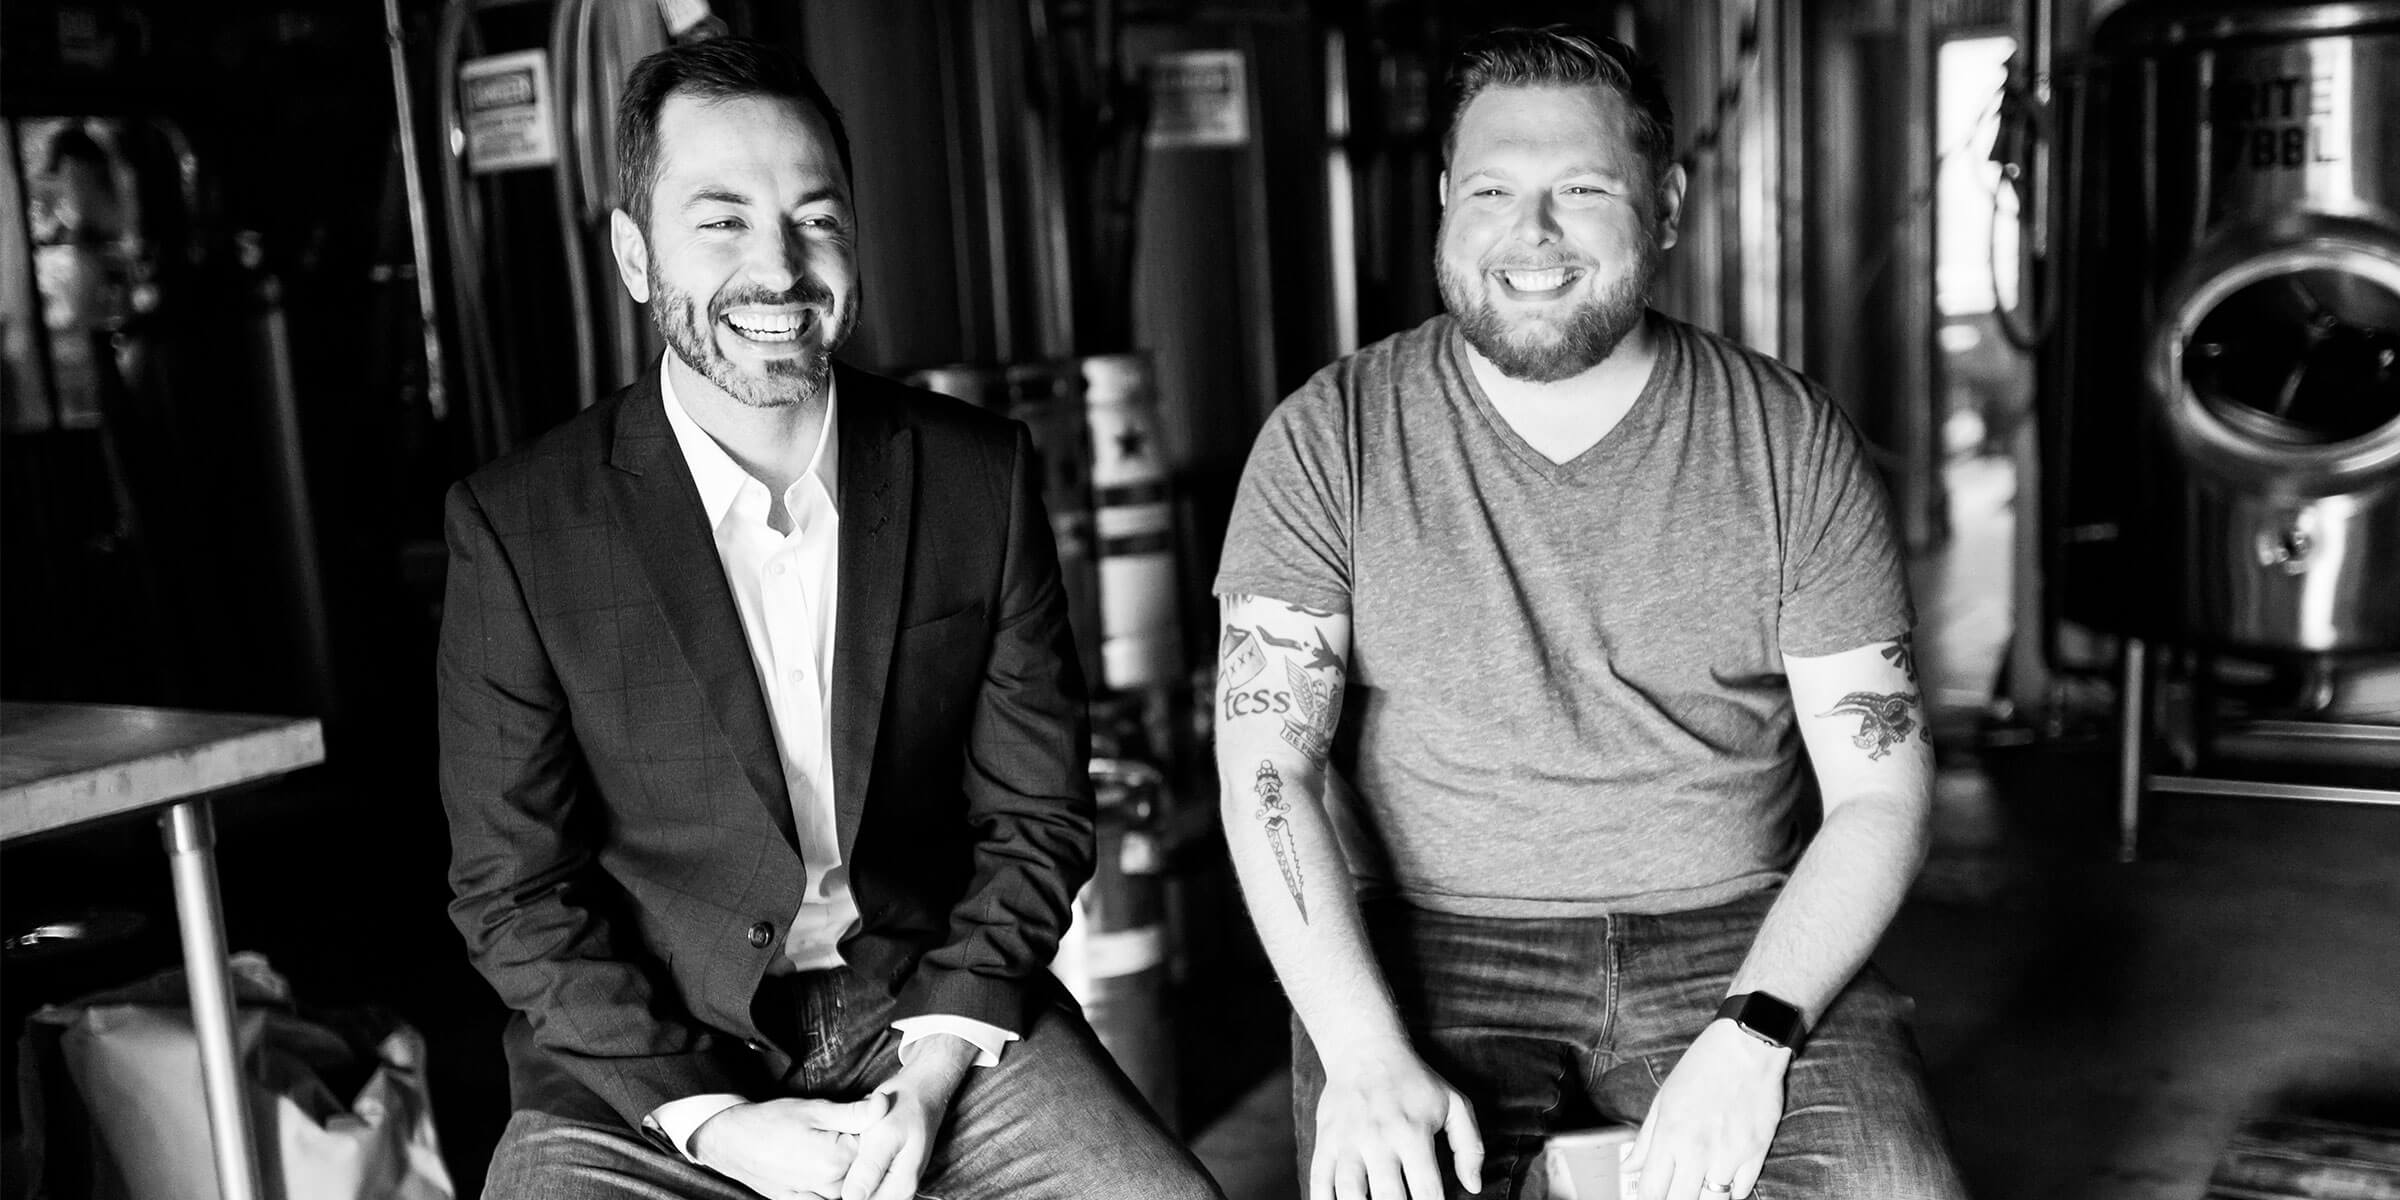 Champion Brewing Company announced that J.R. Hadley has joined Champion as its first Director of Development for the Charlottesville-based brewery.